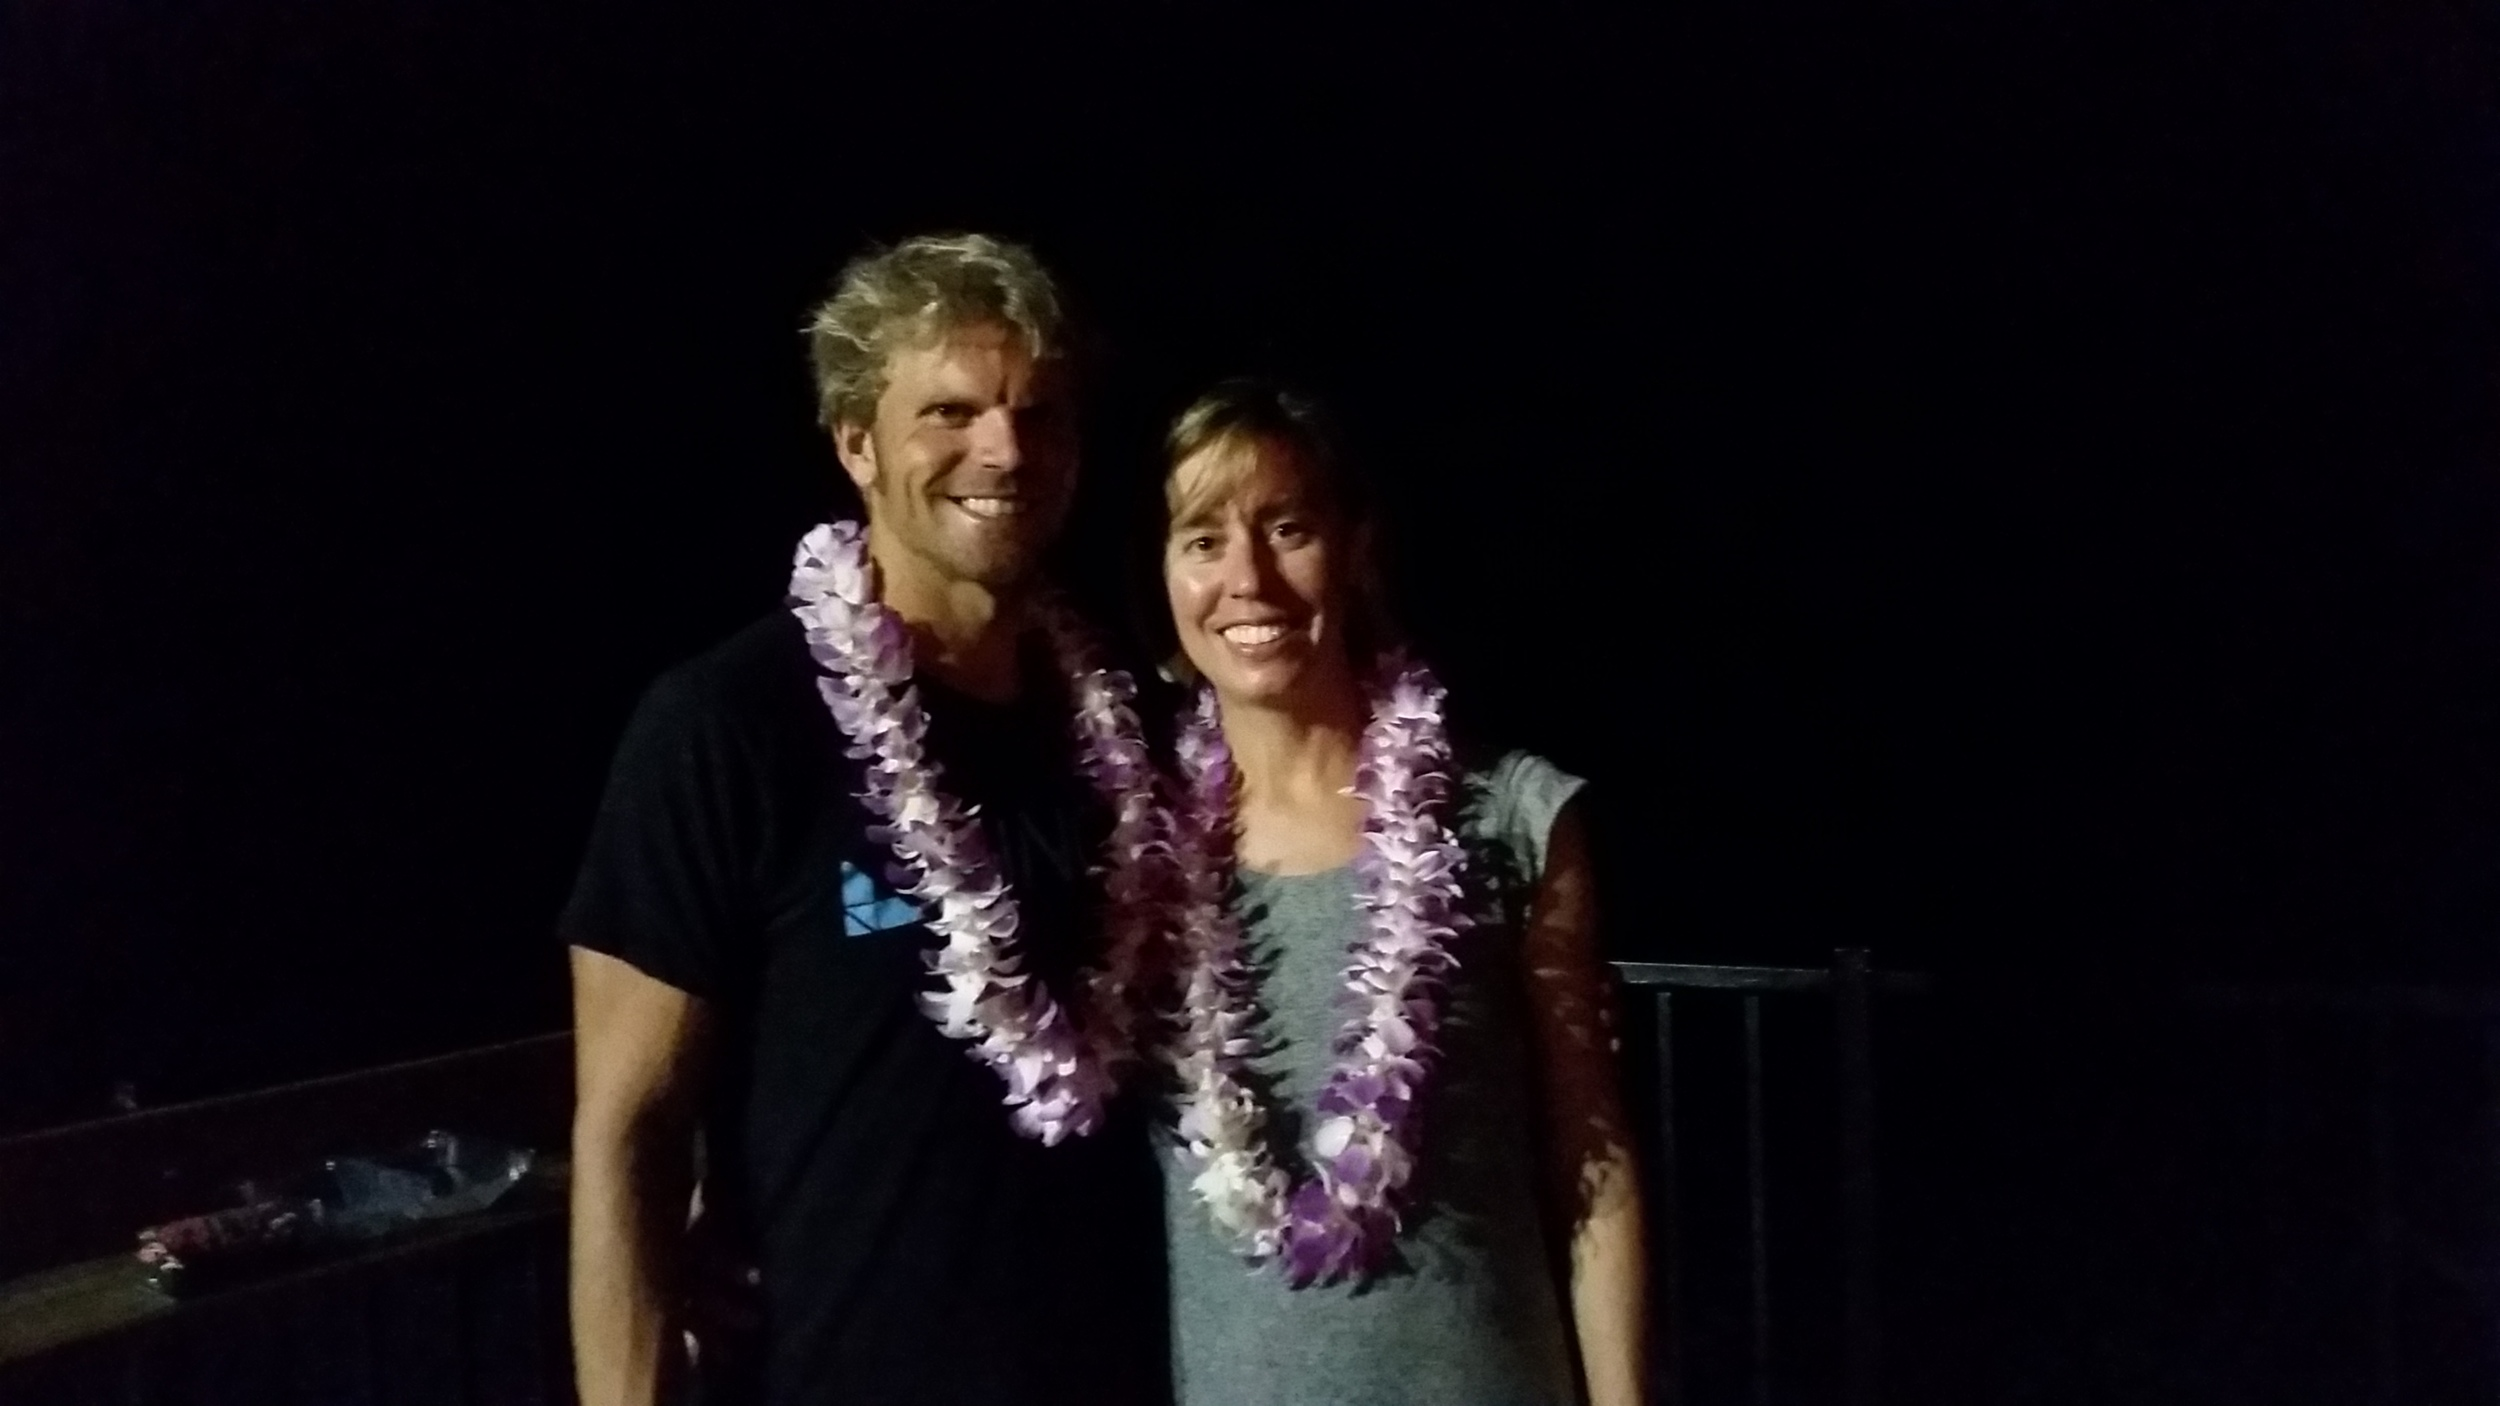 Brooke and I got married on a beach north of Kona in 2010. Our anniversary fell on Monday after the race and we were fortunate to celebrate our 5th anniversary on the island.